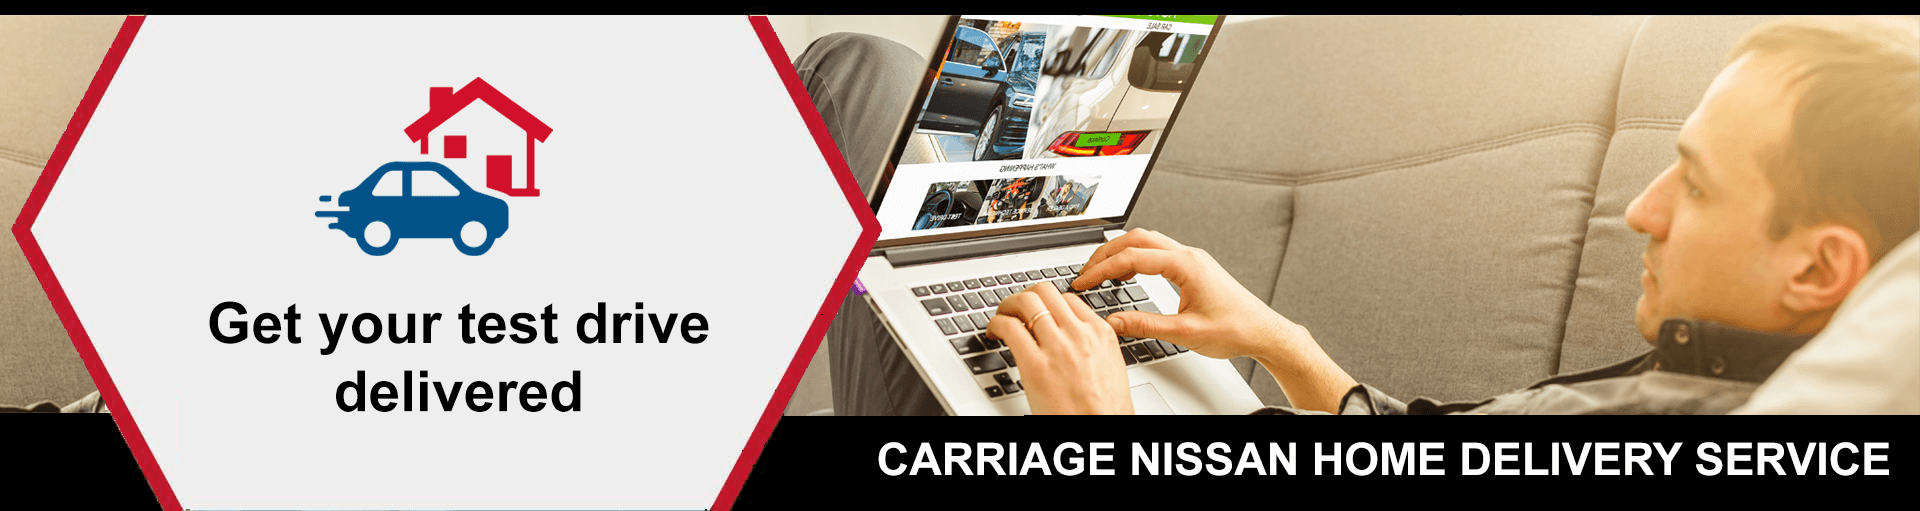 Carriage Nissan Home Delivery